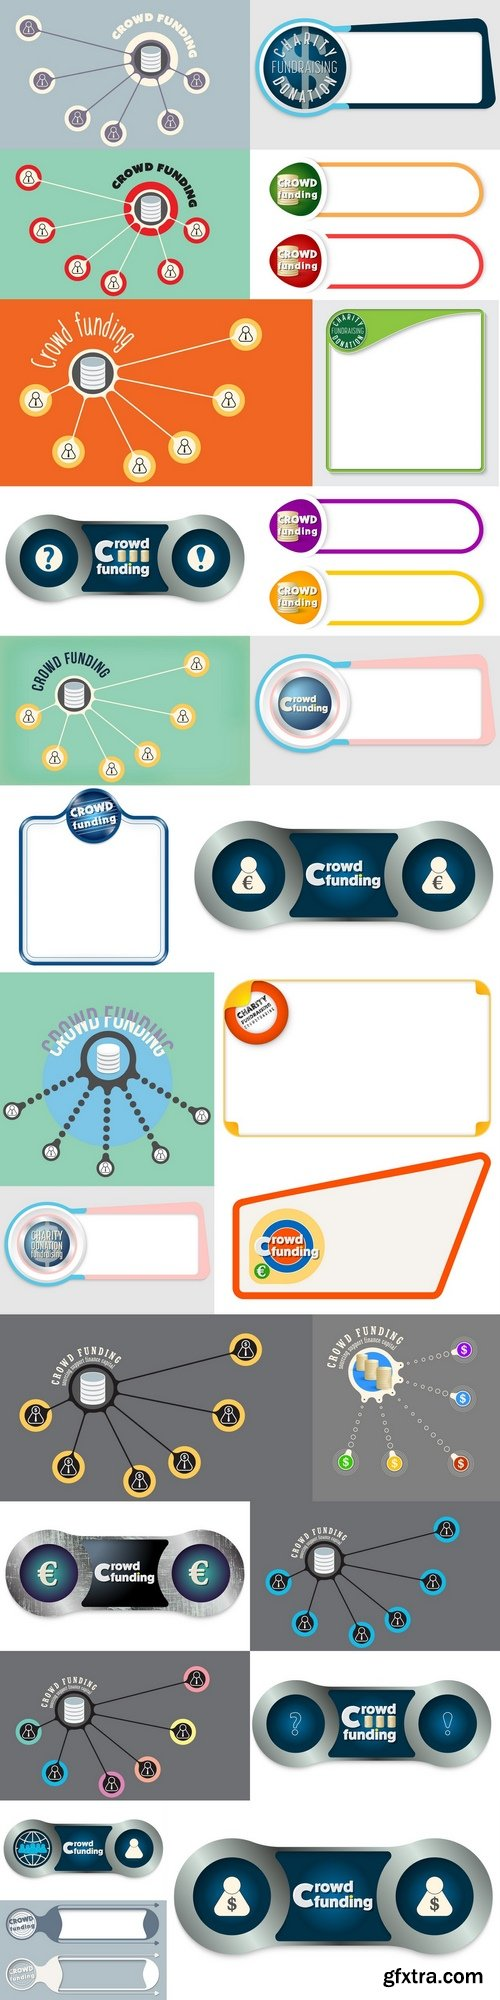 Vector circular object with theme of crowd funding 2